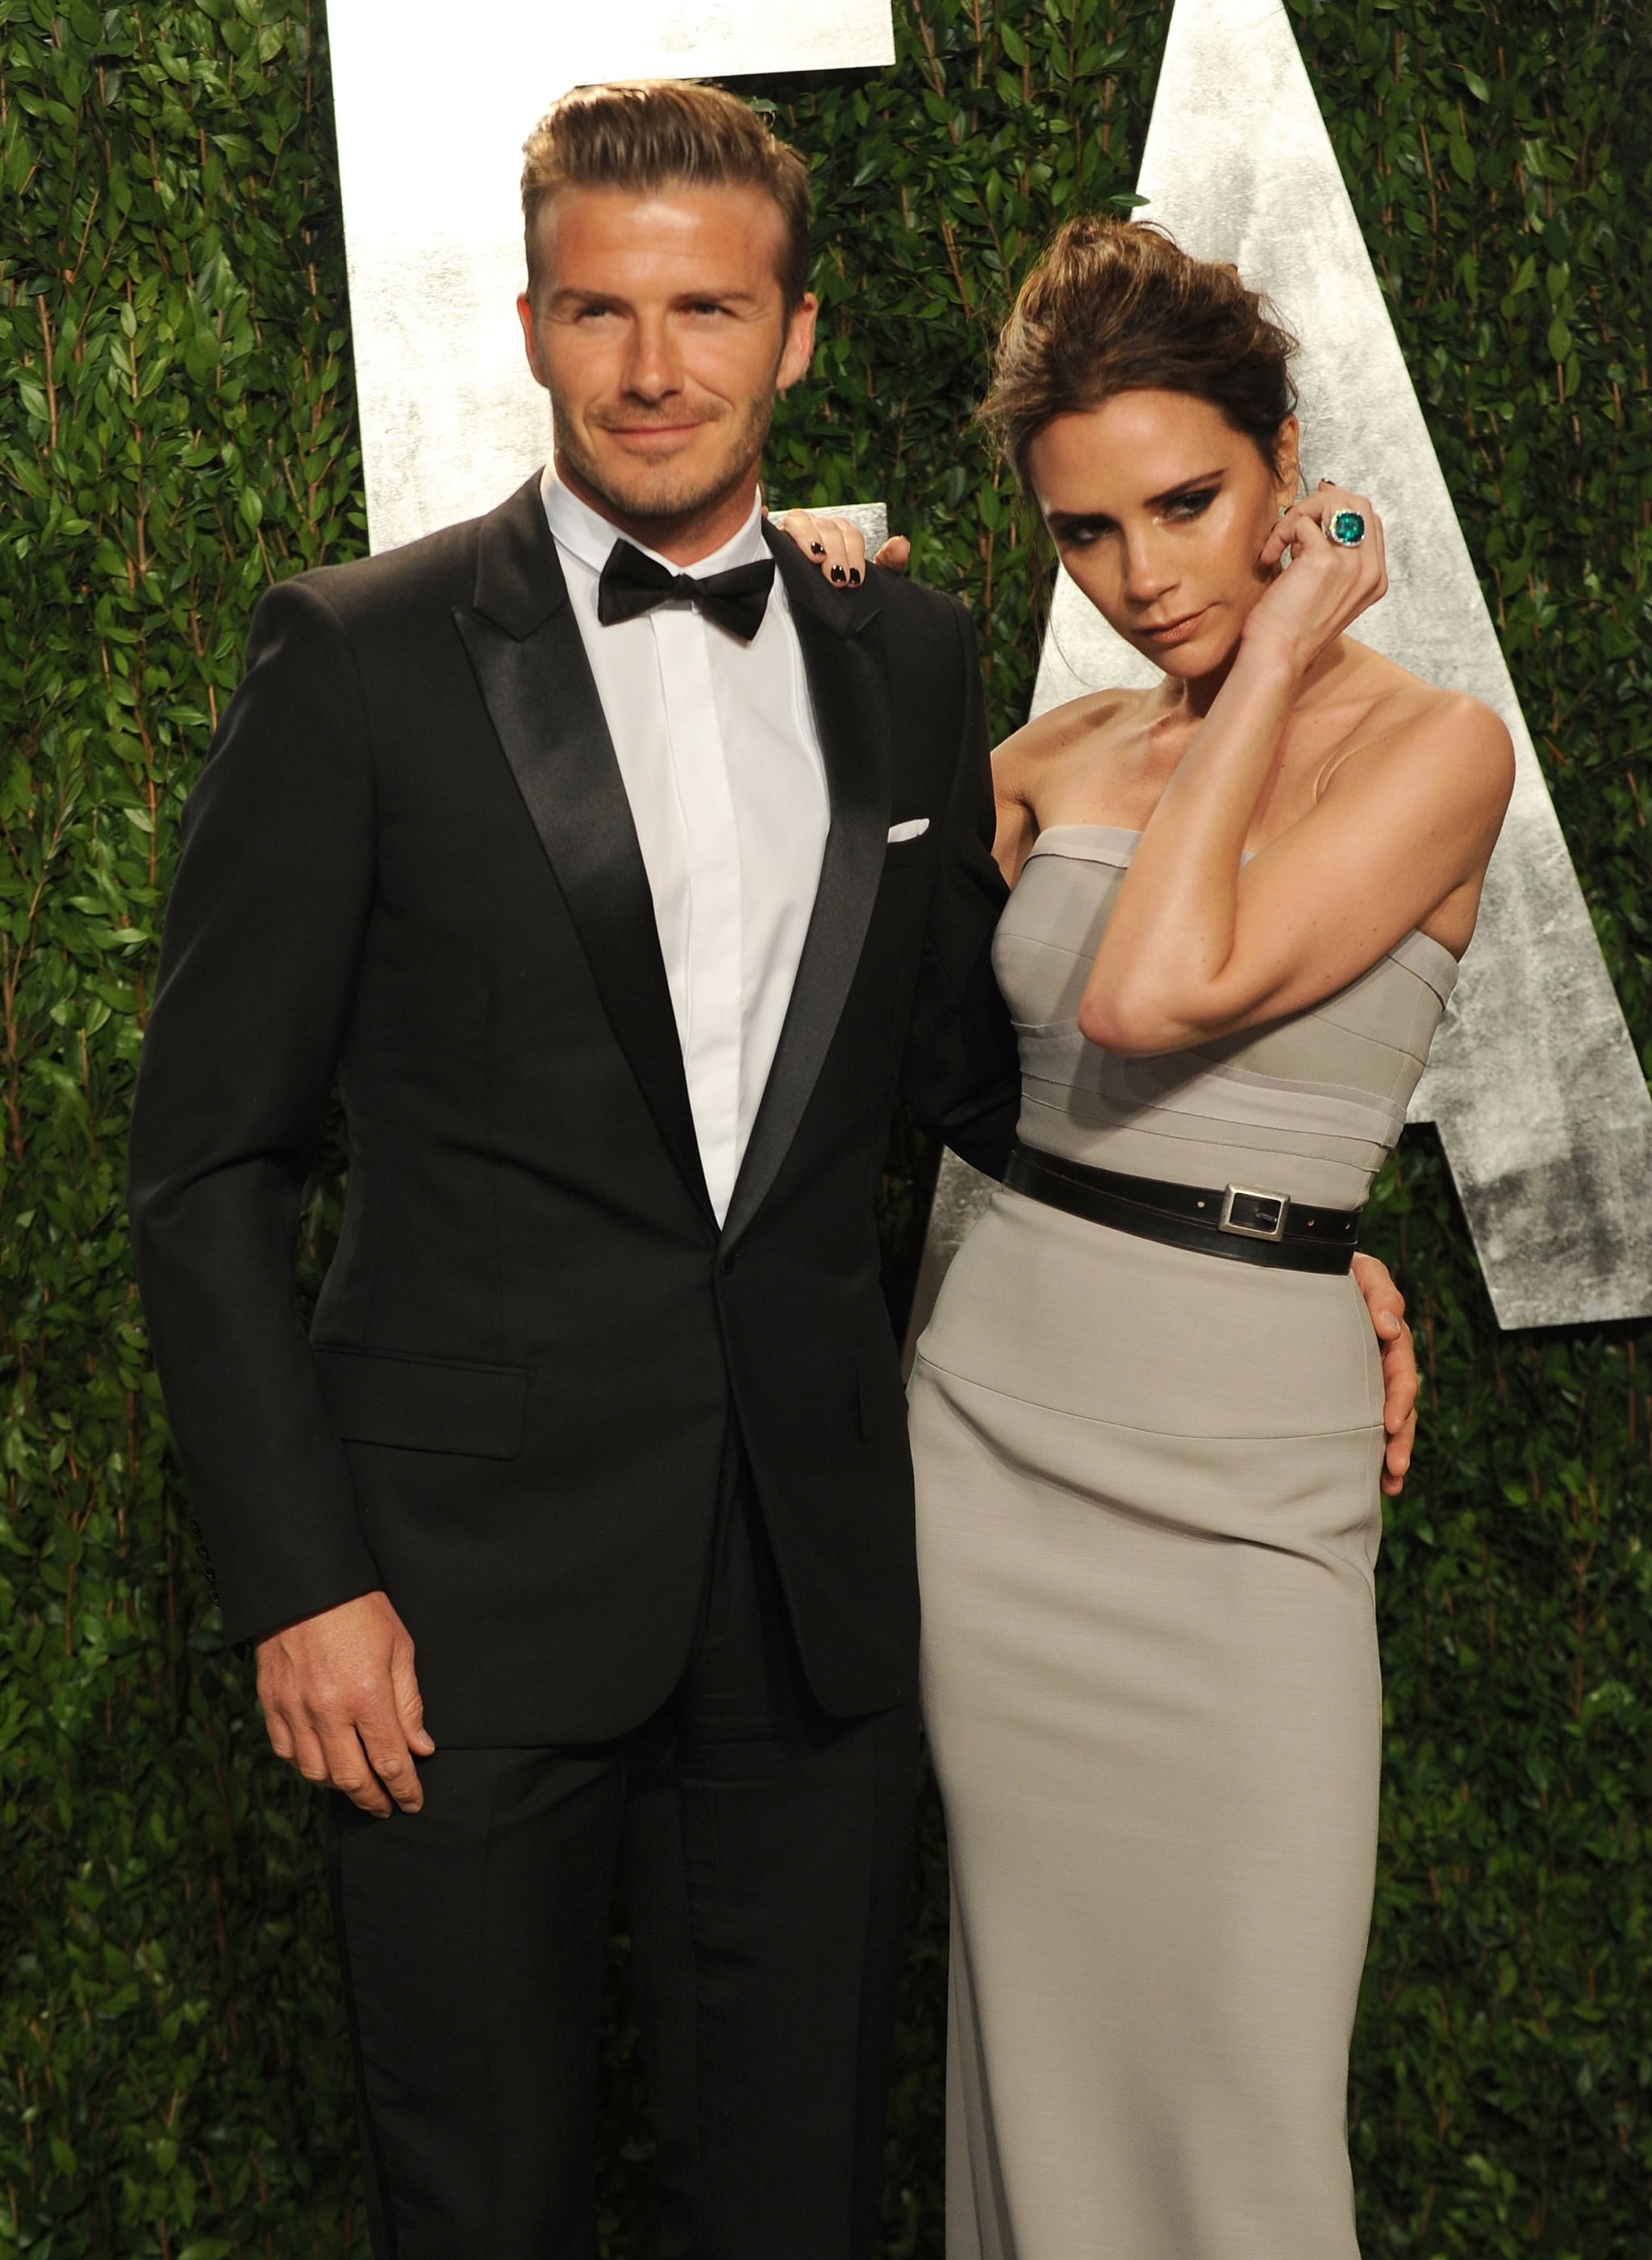 Victoria posed on David's arm at the February 2012 Vanity Fair Oscars party in LA.